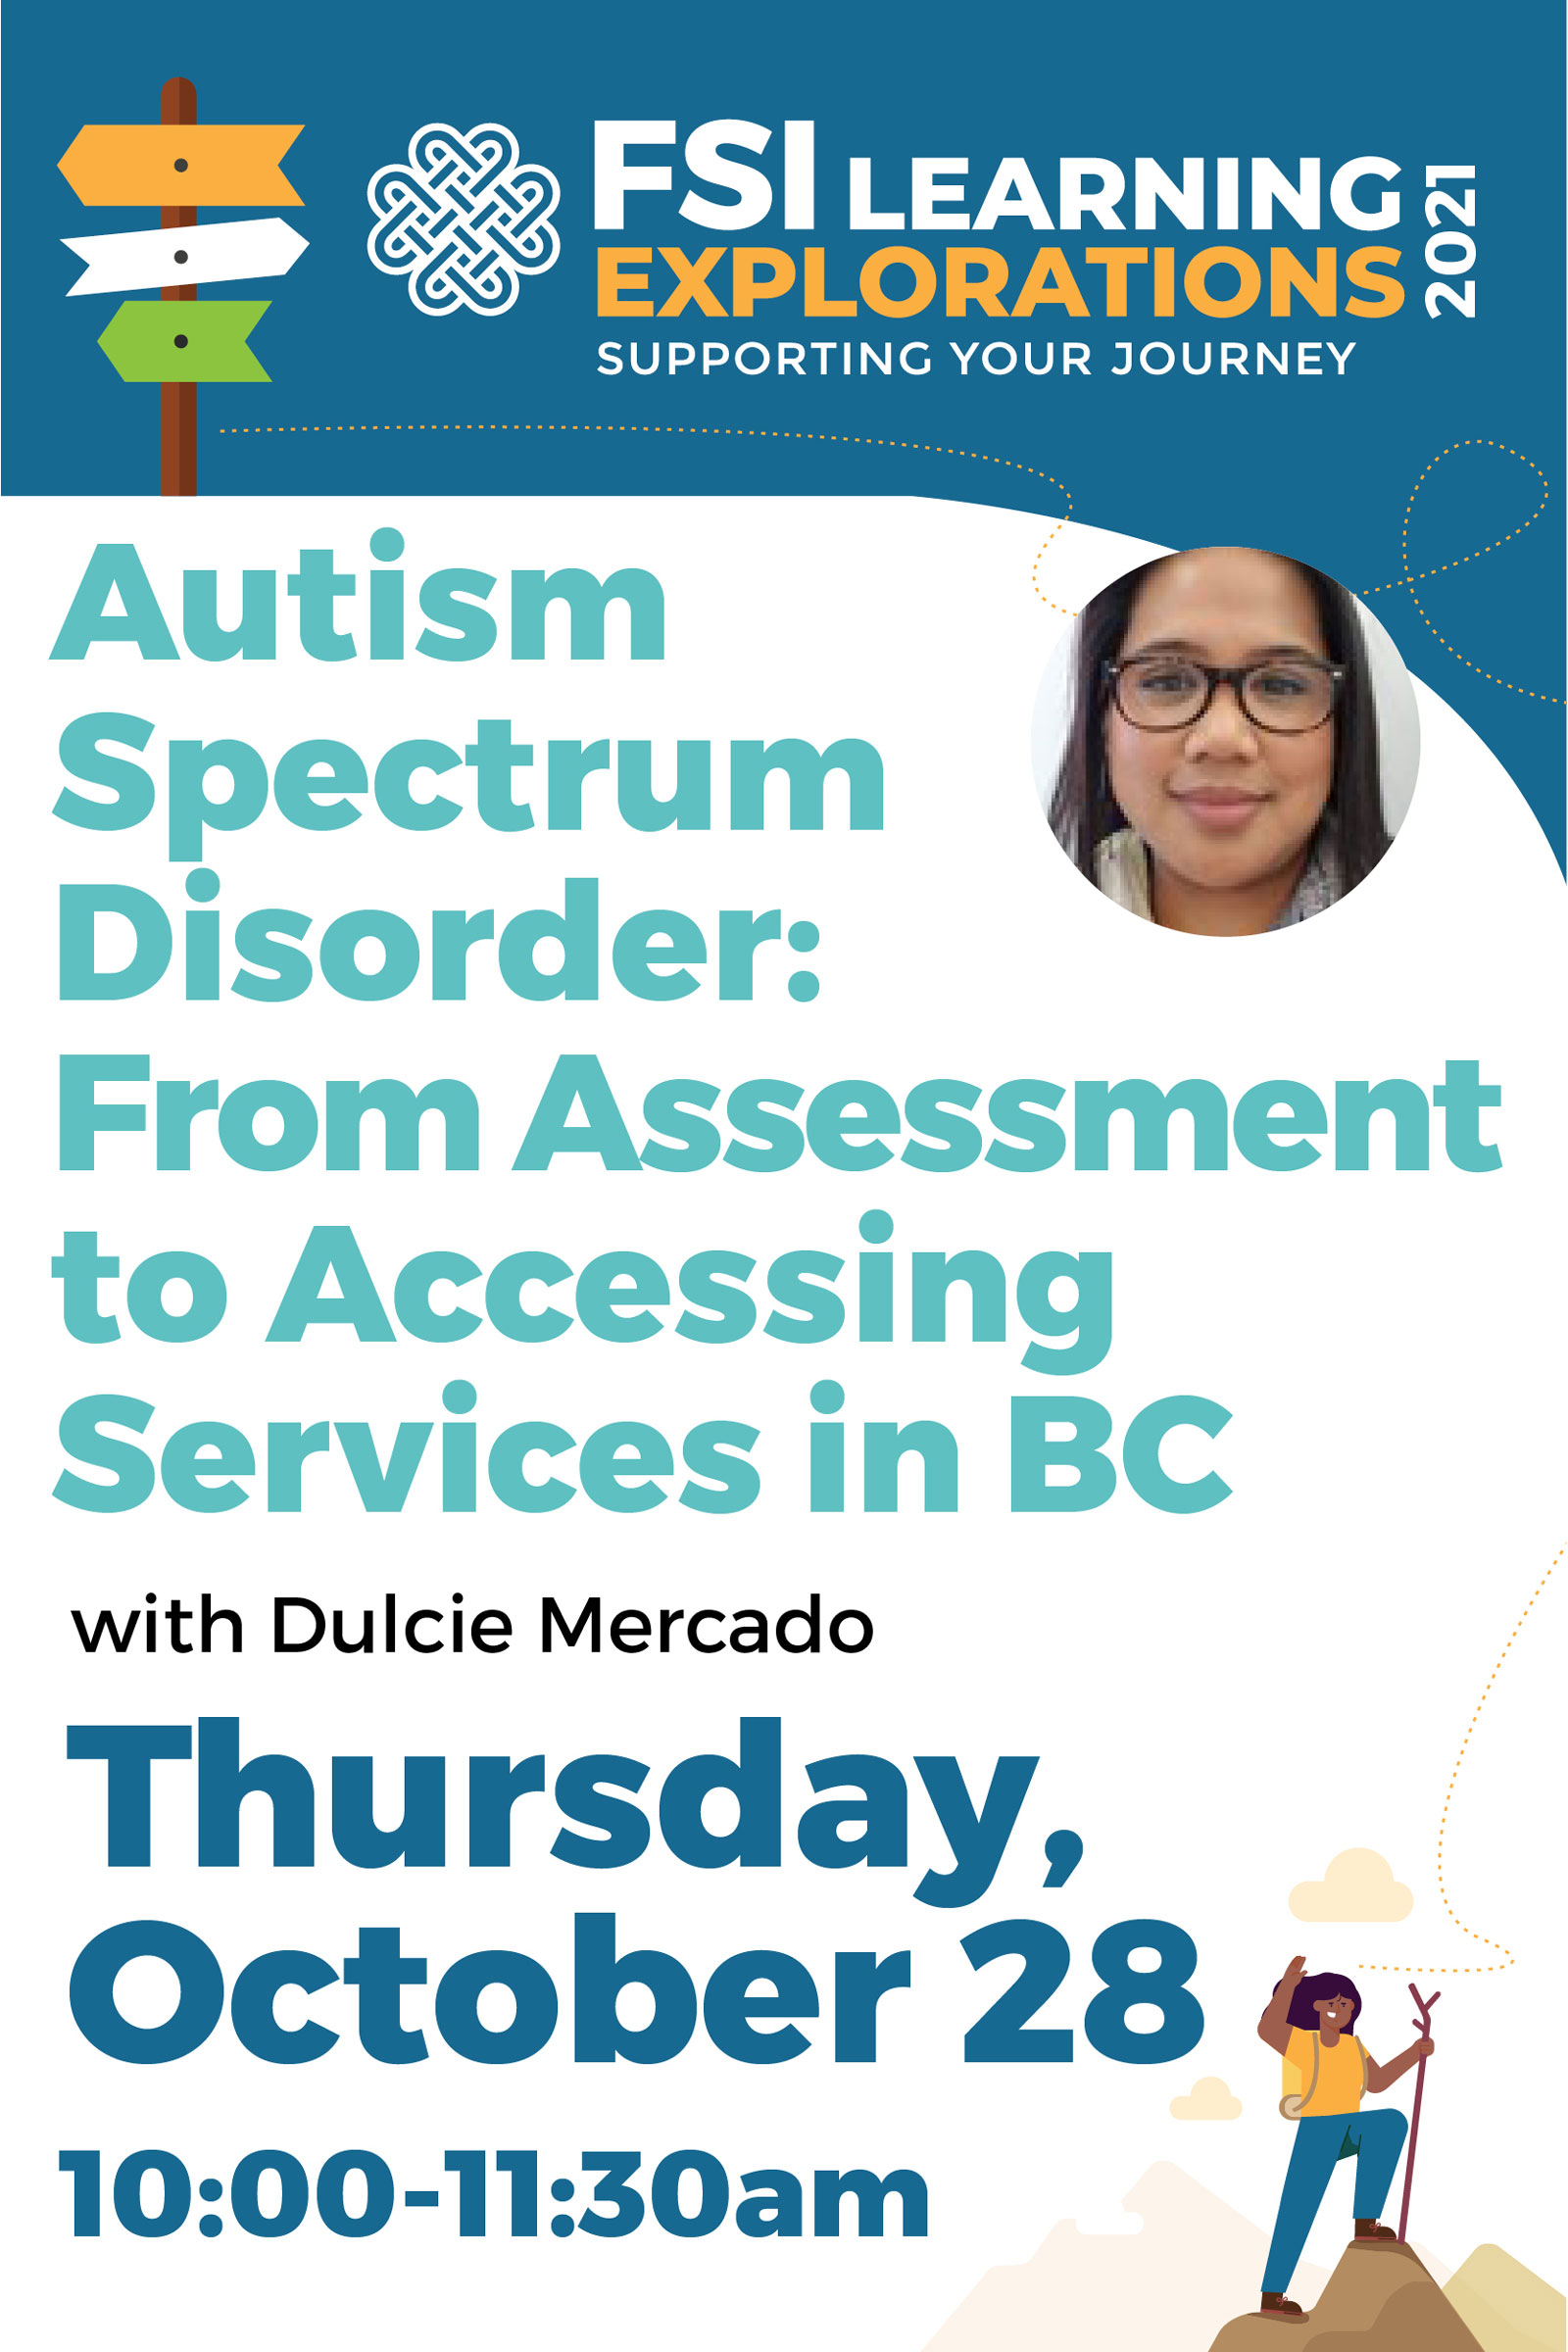 FSI Learning Explorations - Autism Spectrum Disorder – From Assessment to Accessing Services in BC